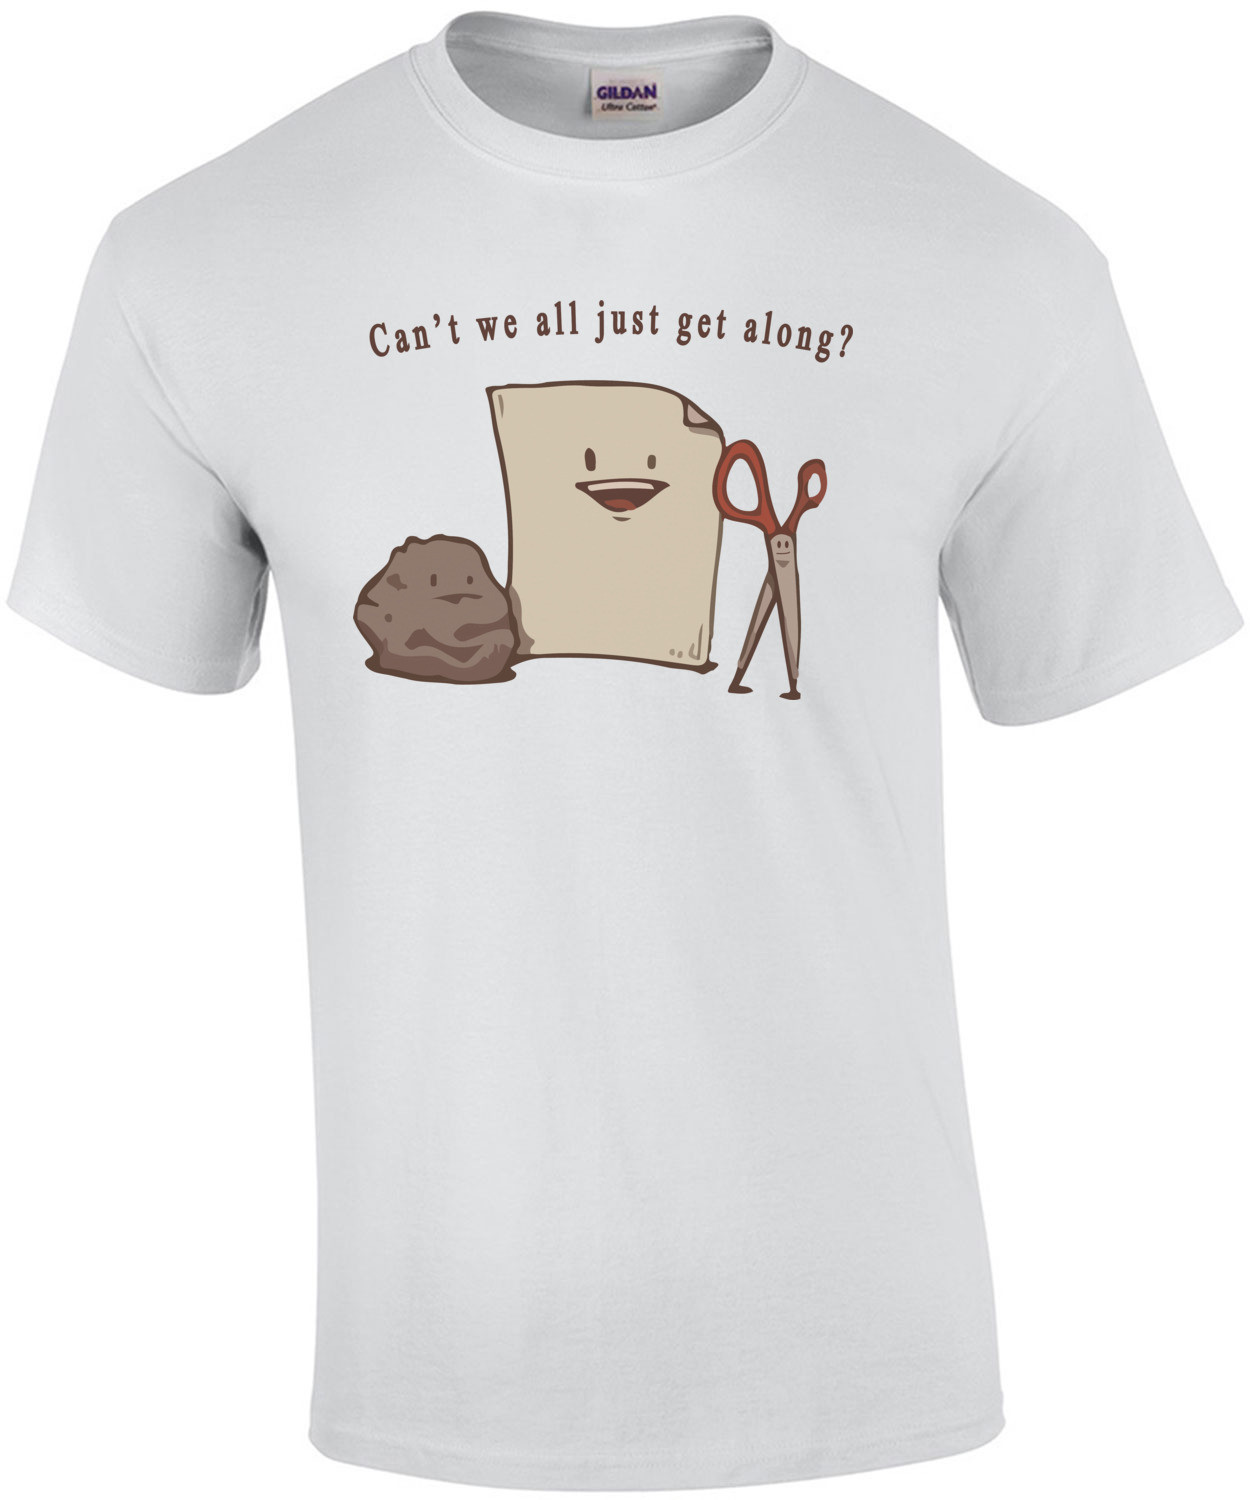 Can't we all just get along? Rock Paper Scissors - Funny T-Shirt